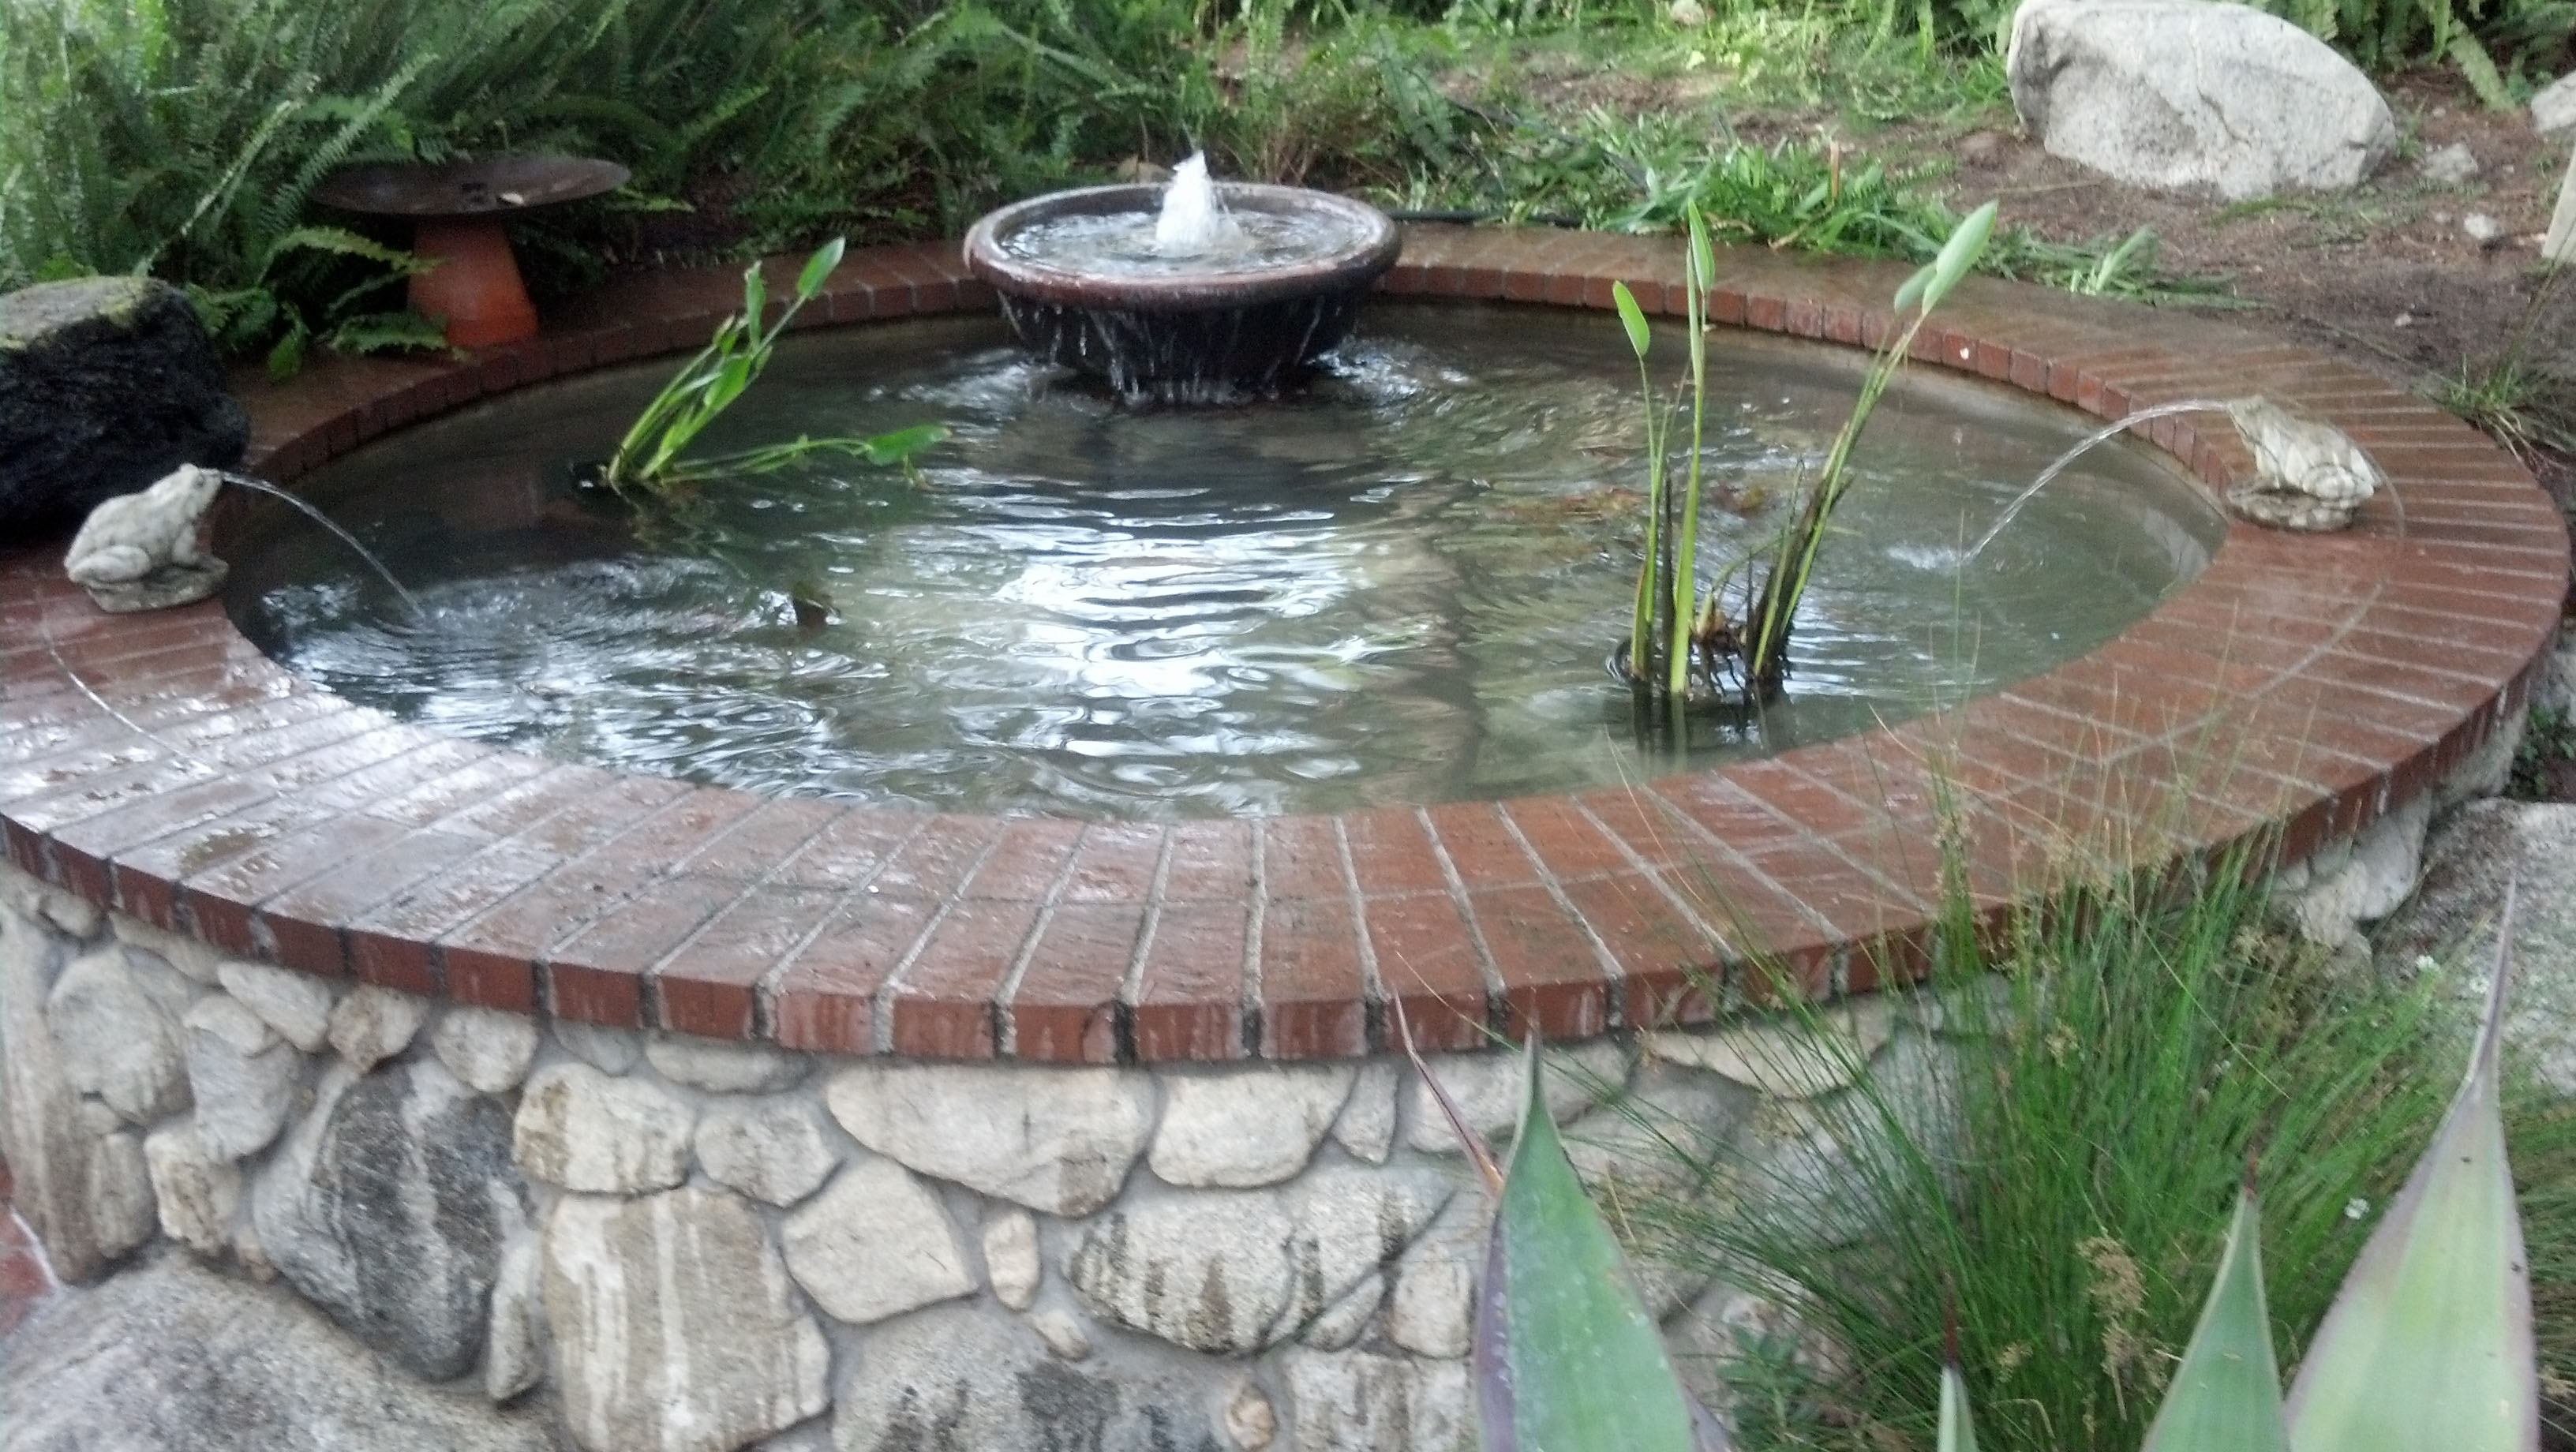 Pond building pond design ideas for Round koi pond